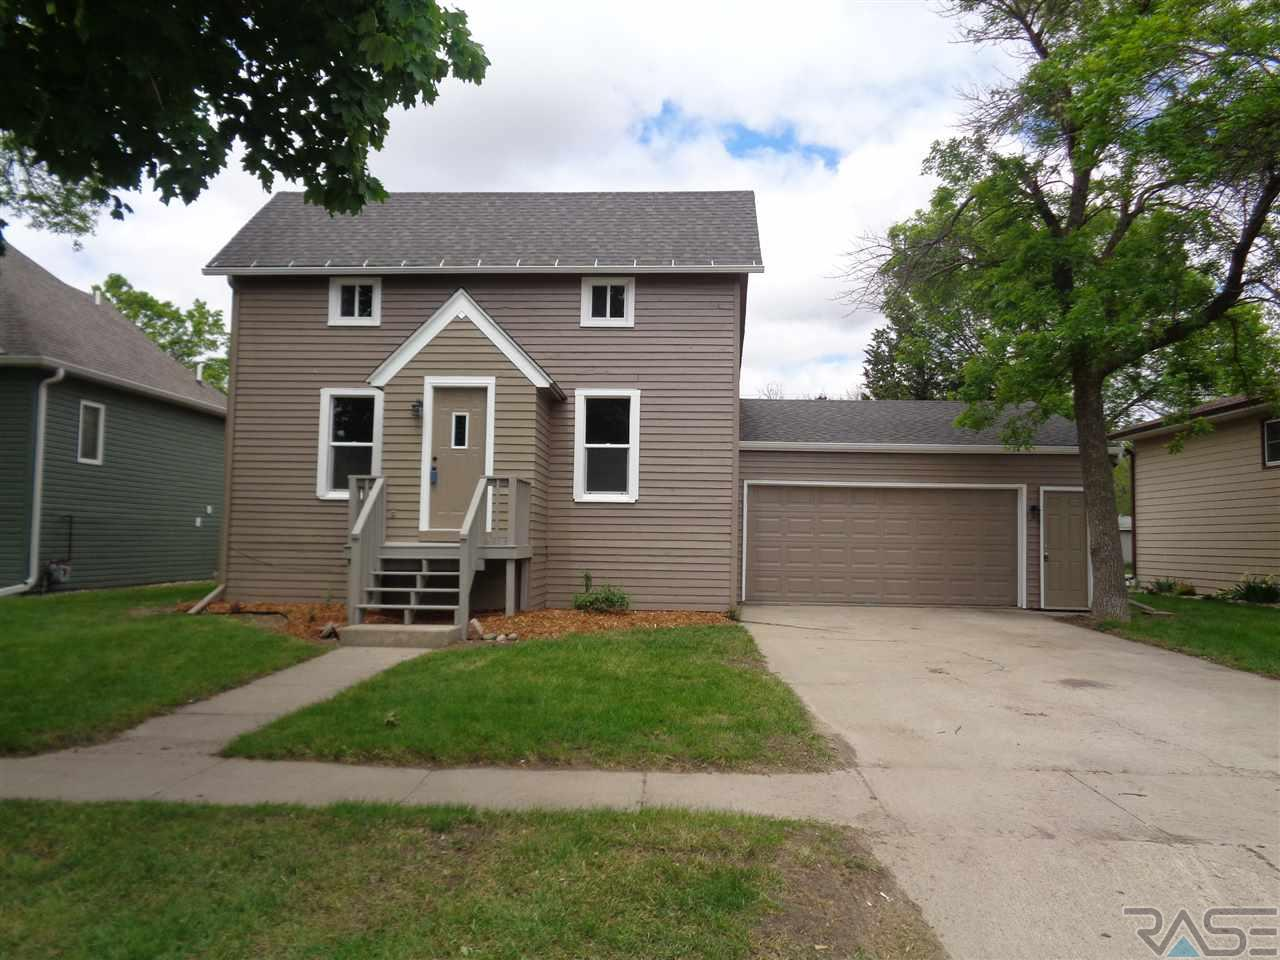 818 E 7th St, Dell Rapids, SD 57022